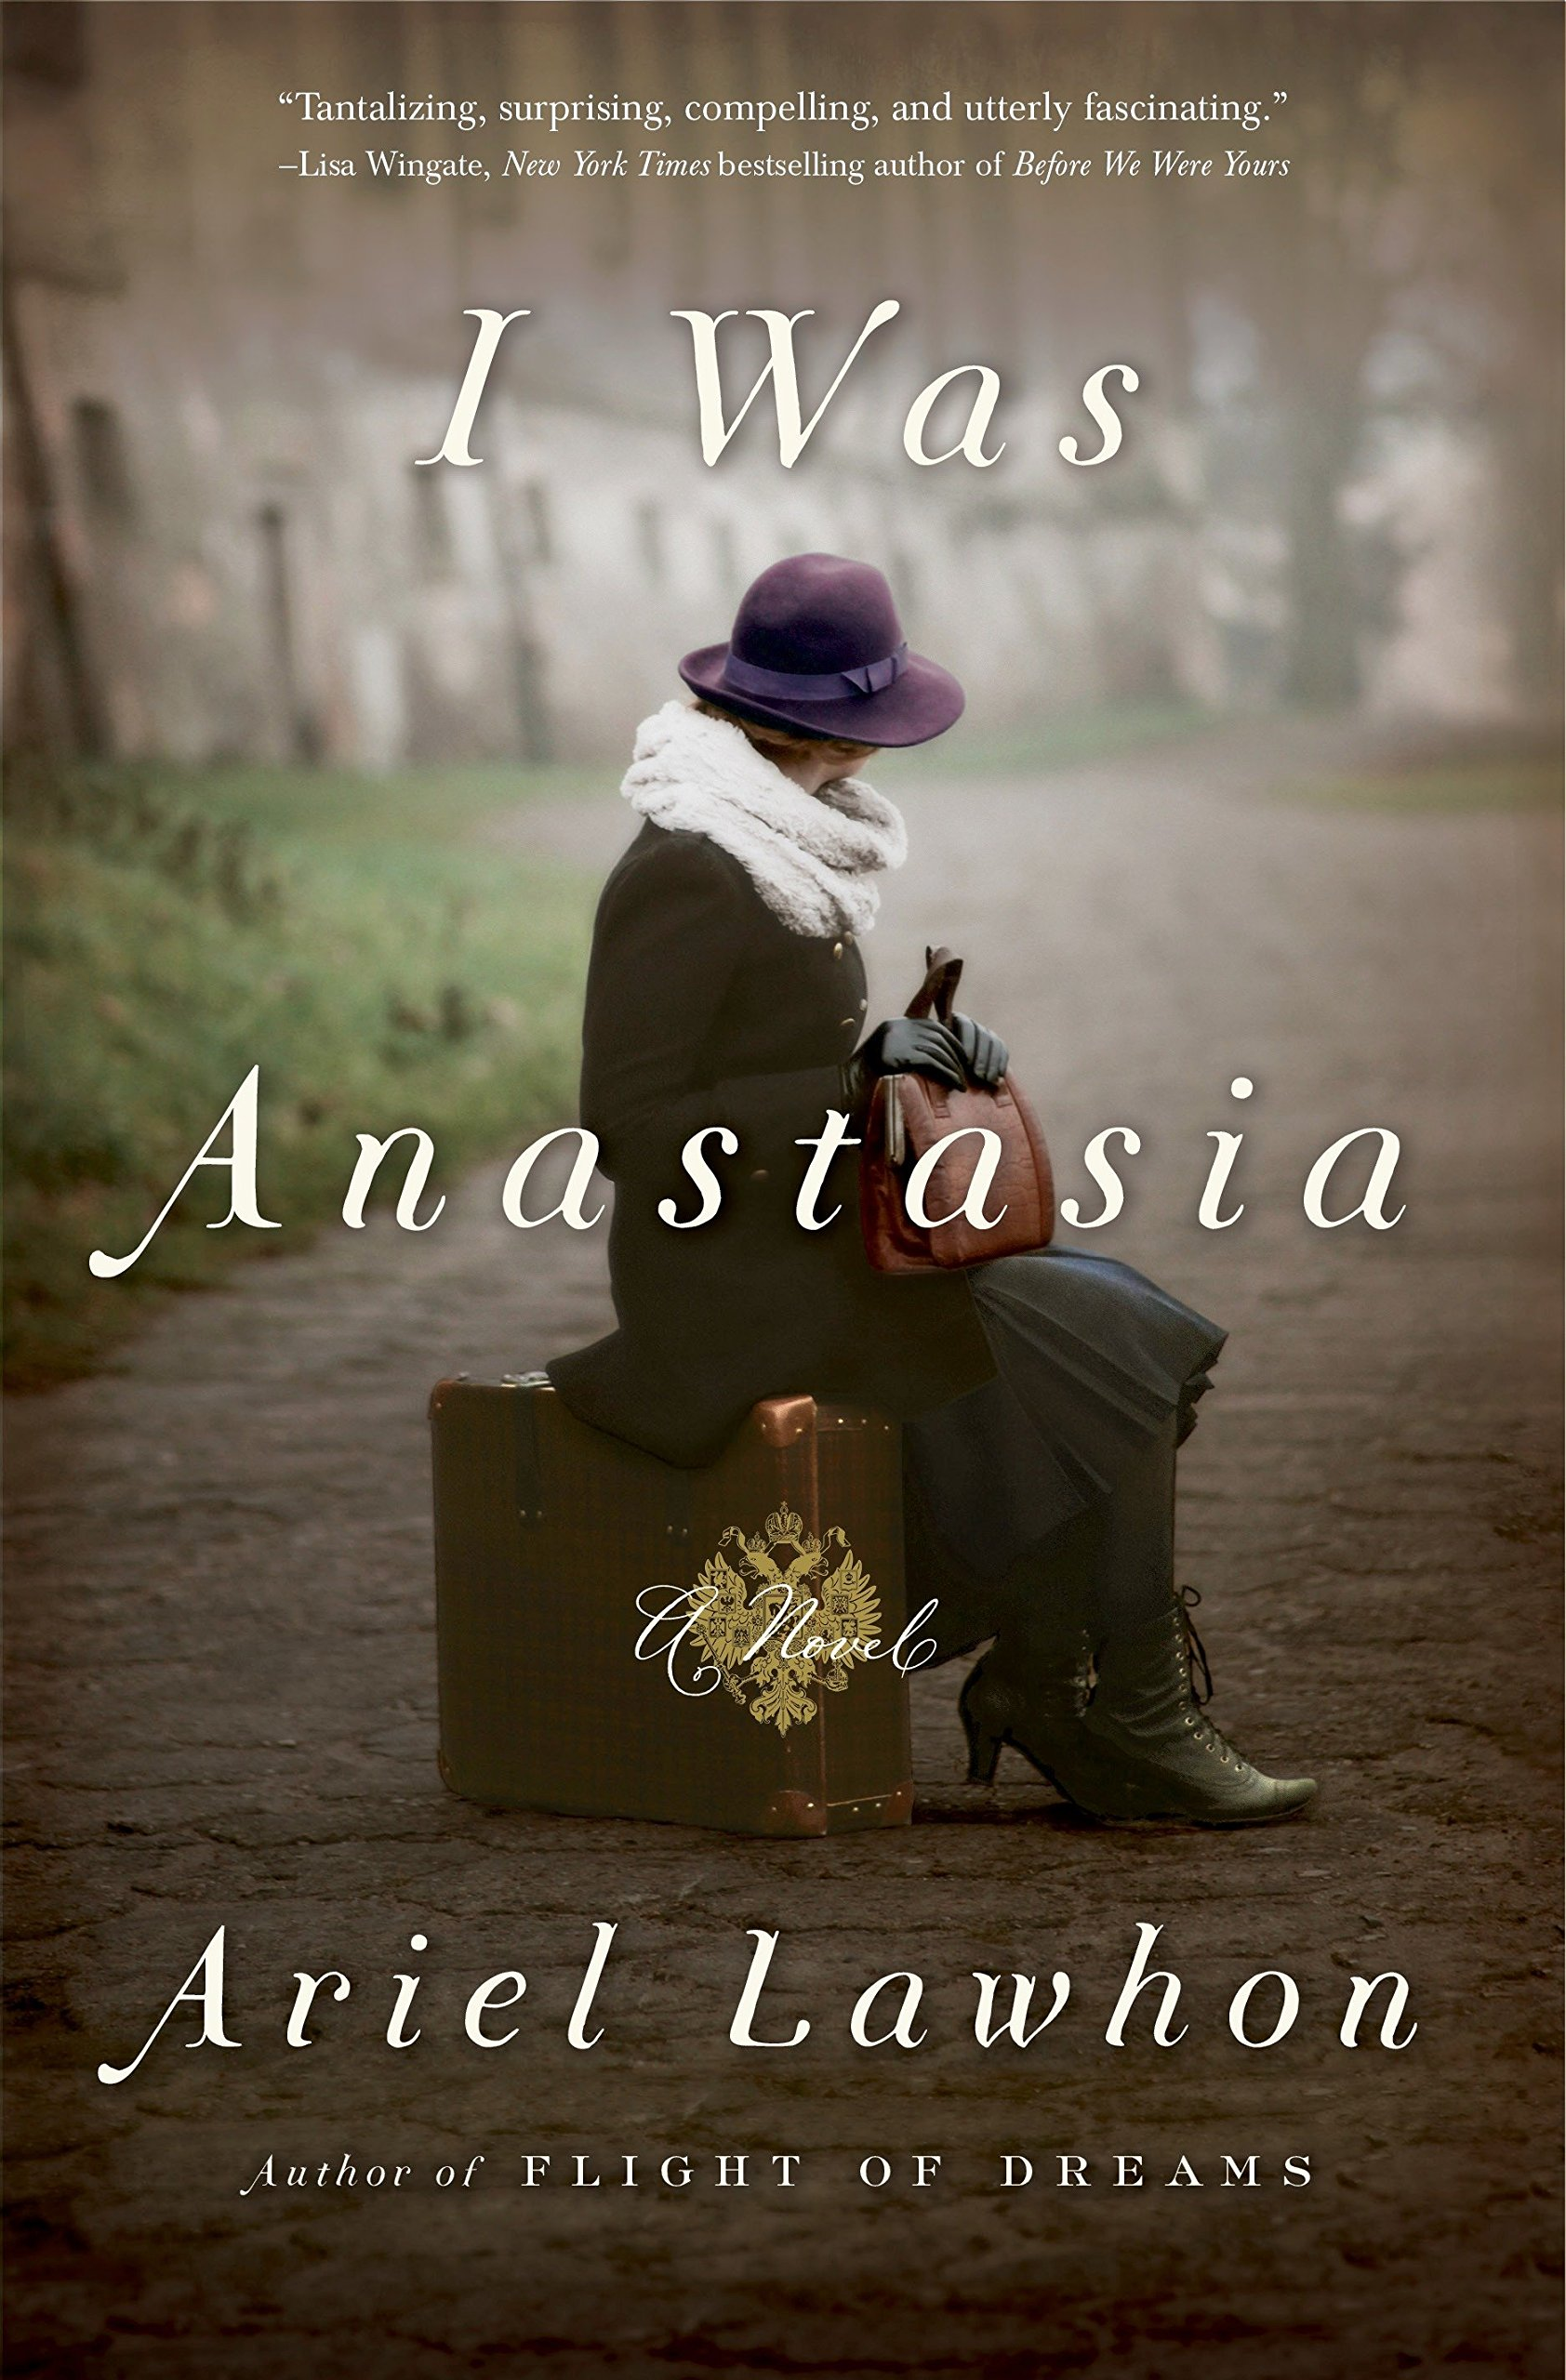 Amazon.com: I Was Anastasia: A Novel (9780385541695): Lawhon, Ariel: Books